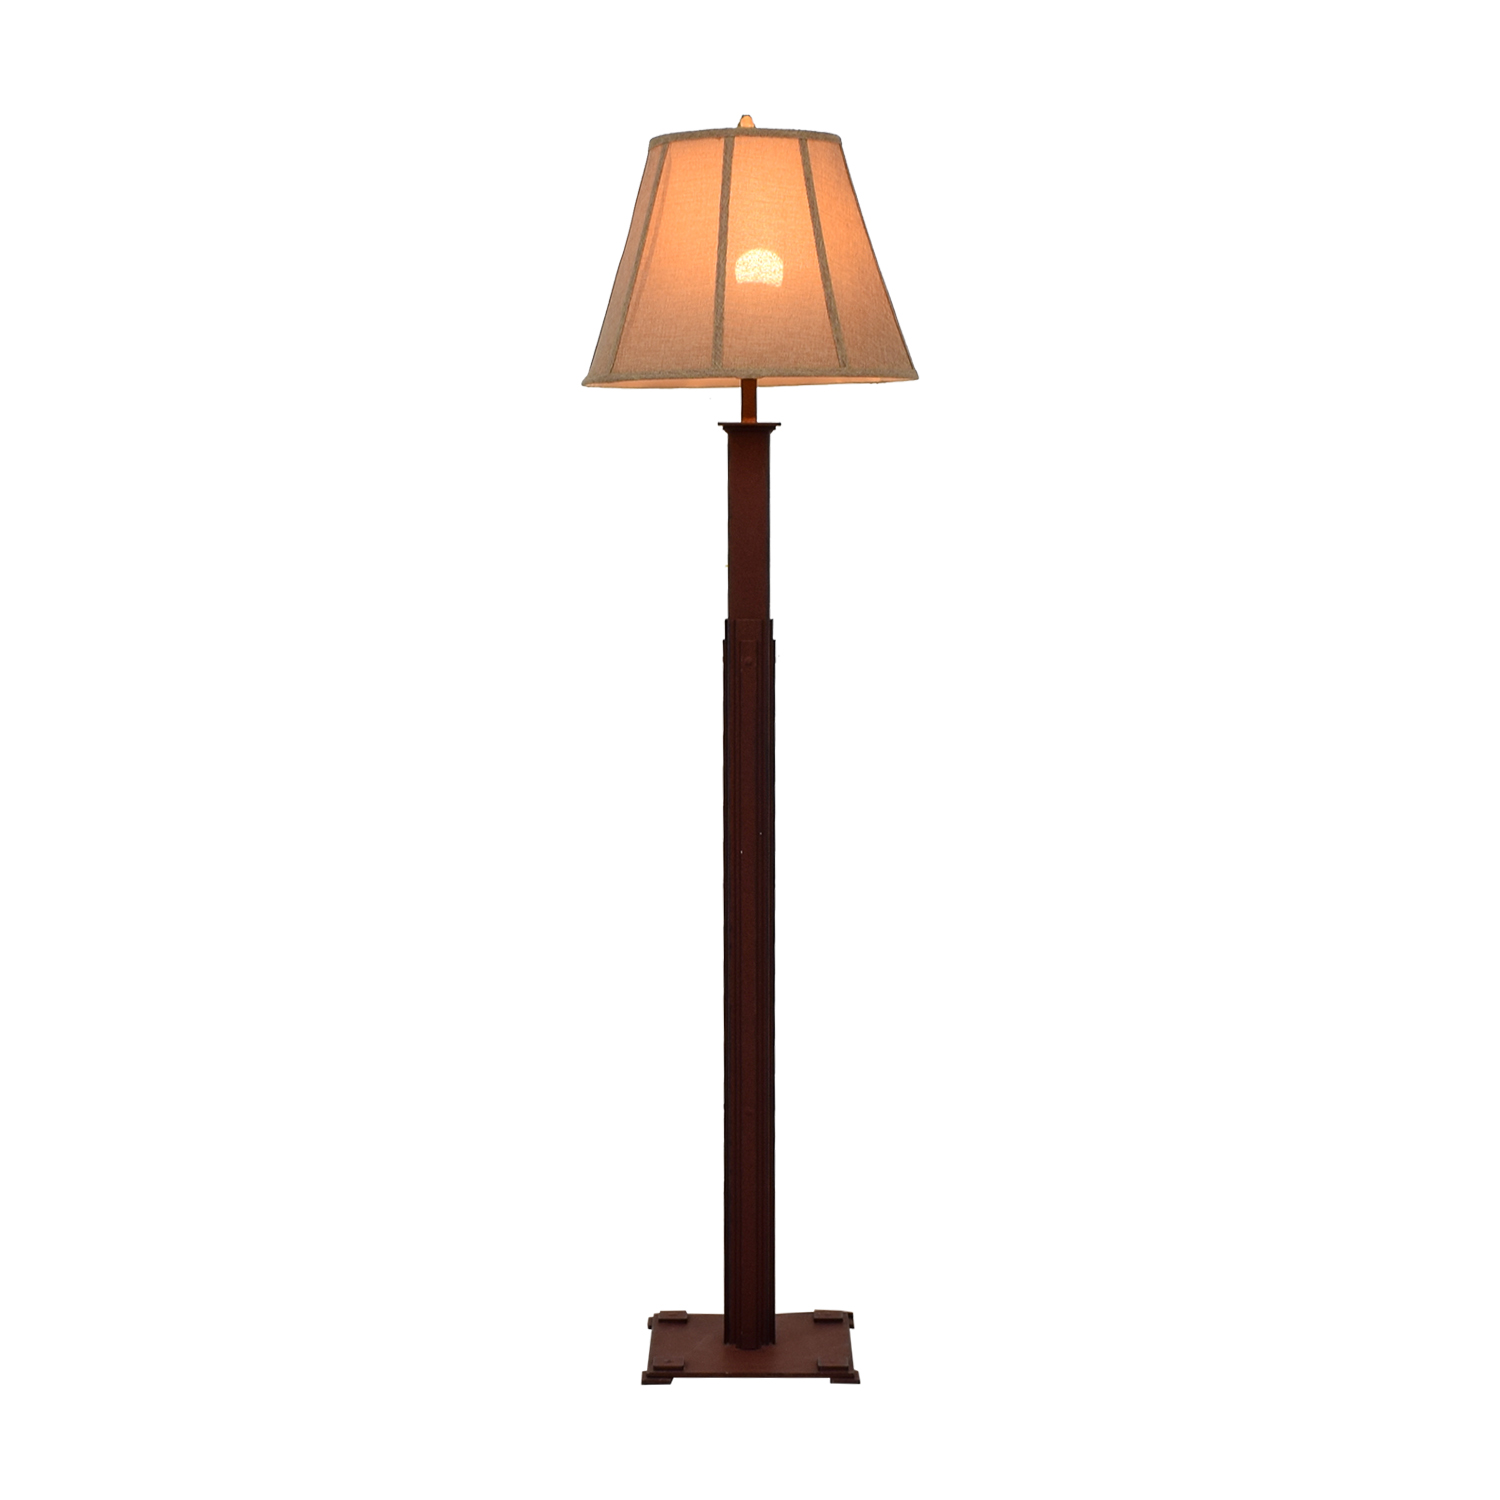 off pottery barn spotlight tripod floor lamp decor distressed burlap shade used accent table west elm outdoor cooler stand light pine end tables pendant small rectangular garden